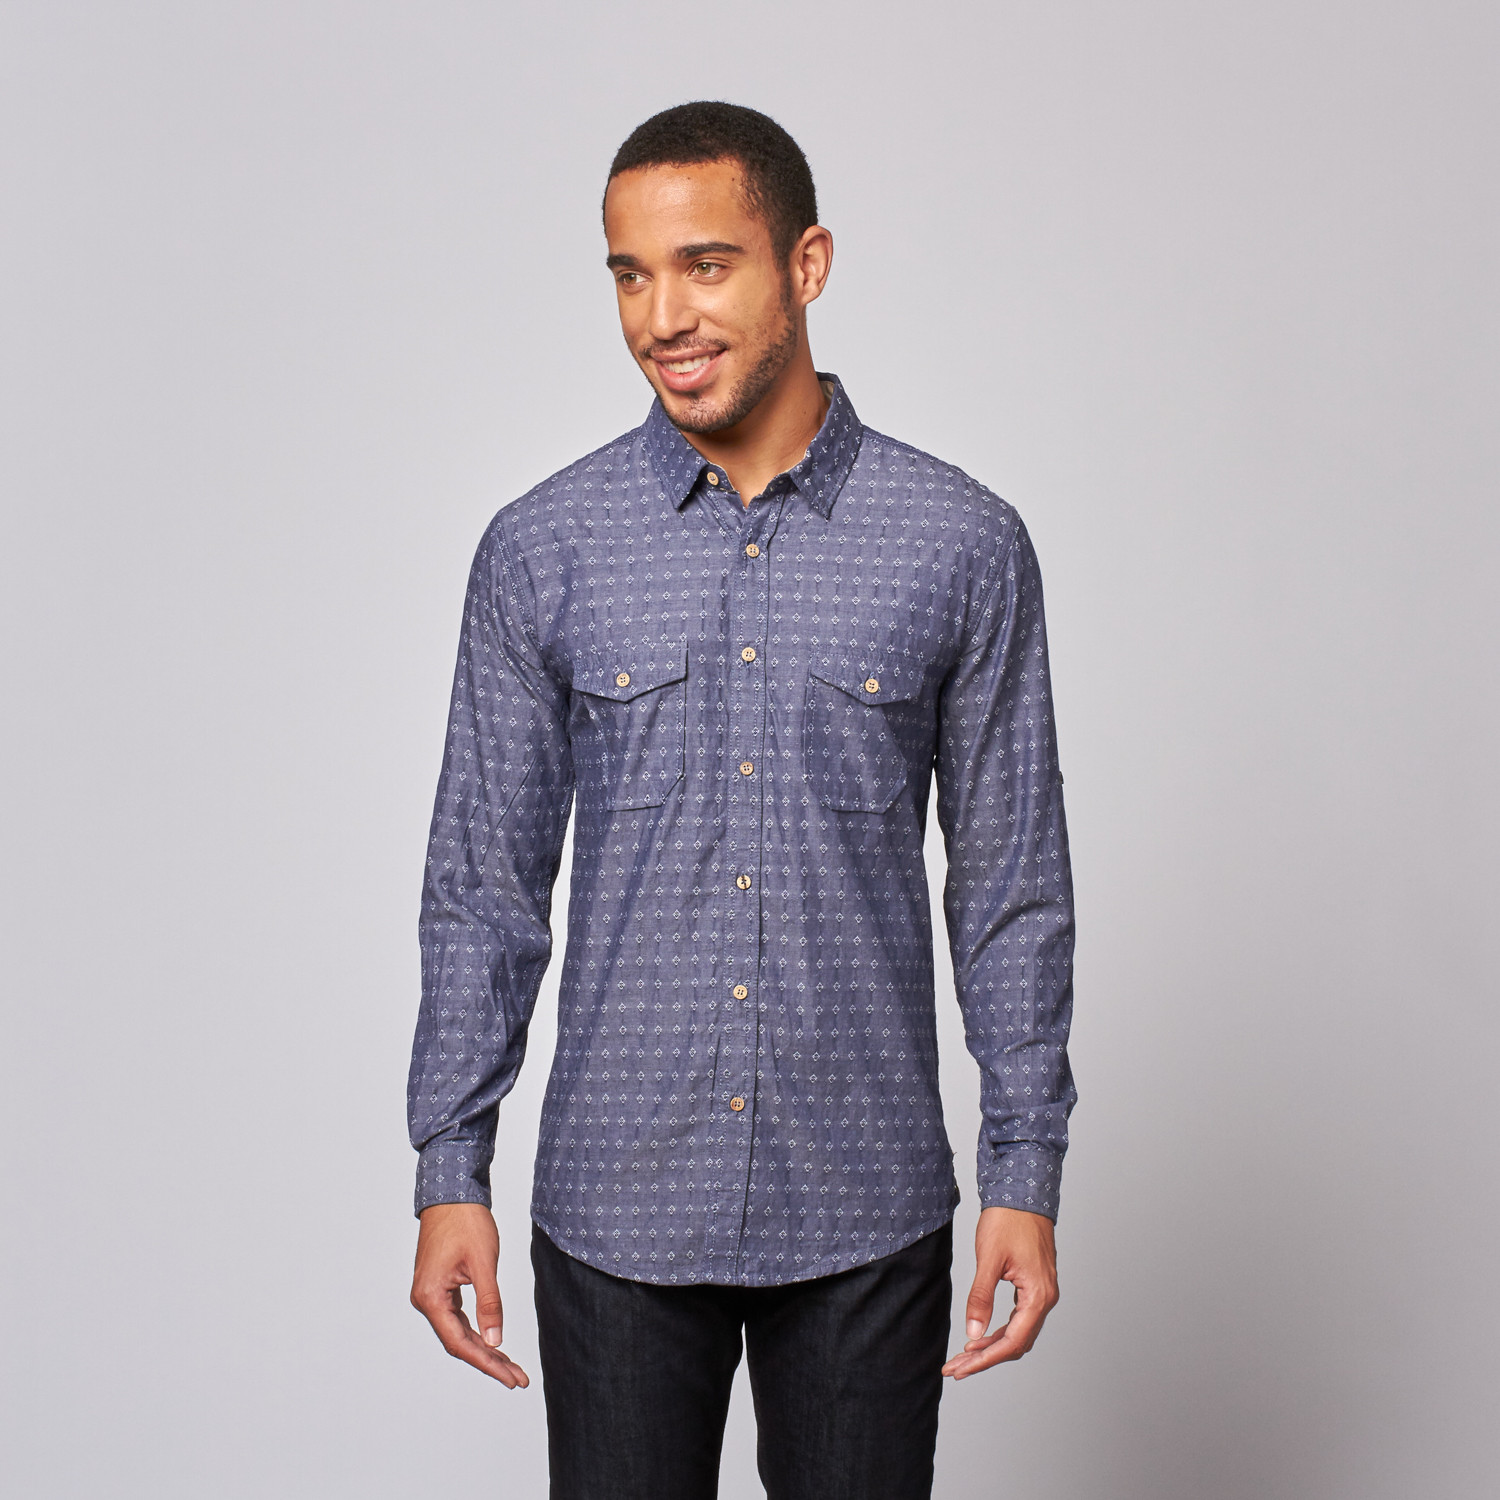 Jacquard Button Up Shirt Navy S Mojito Touch Of